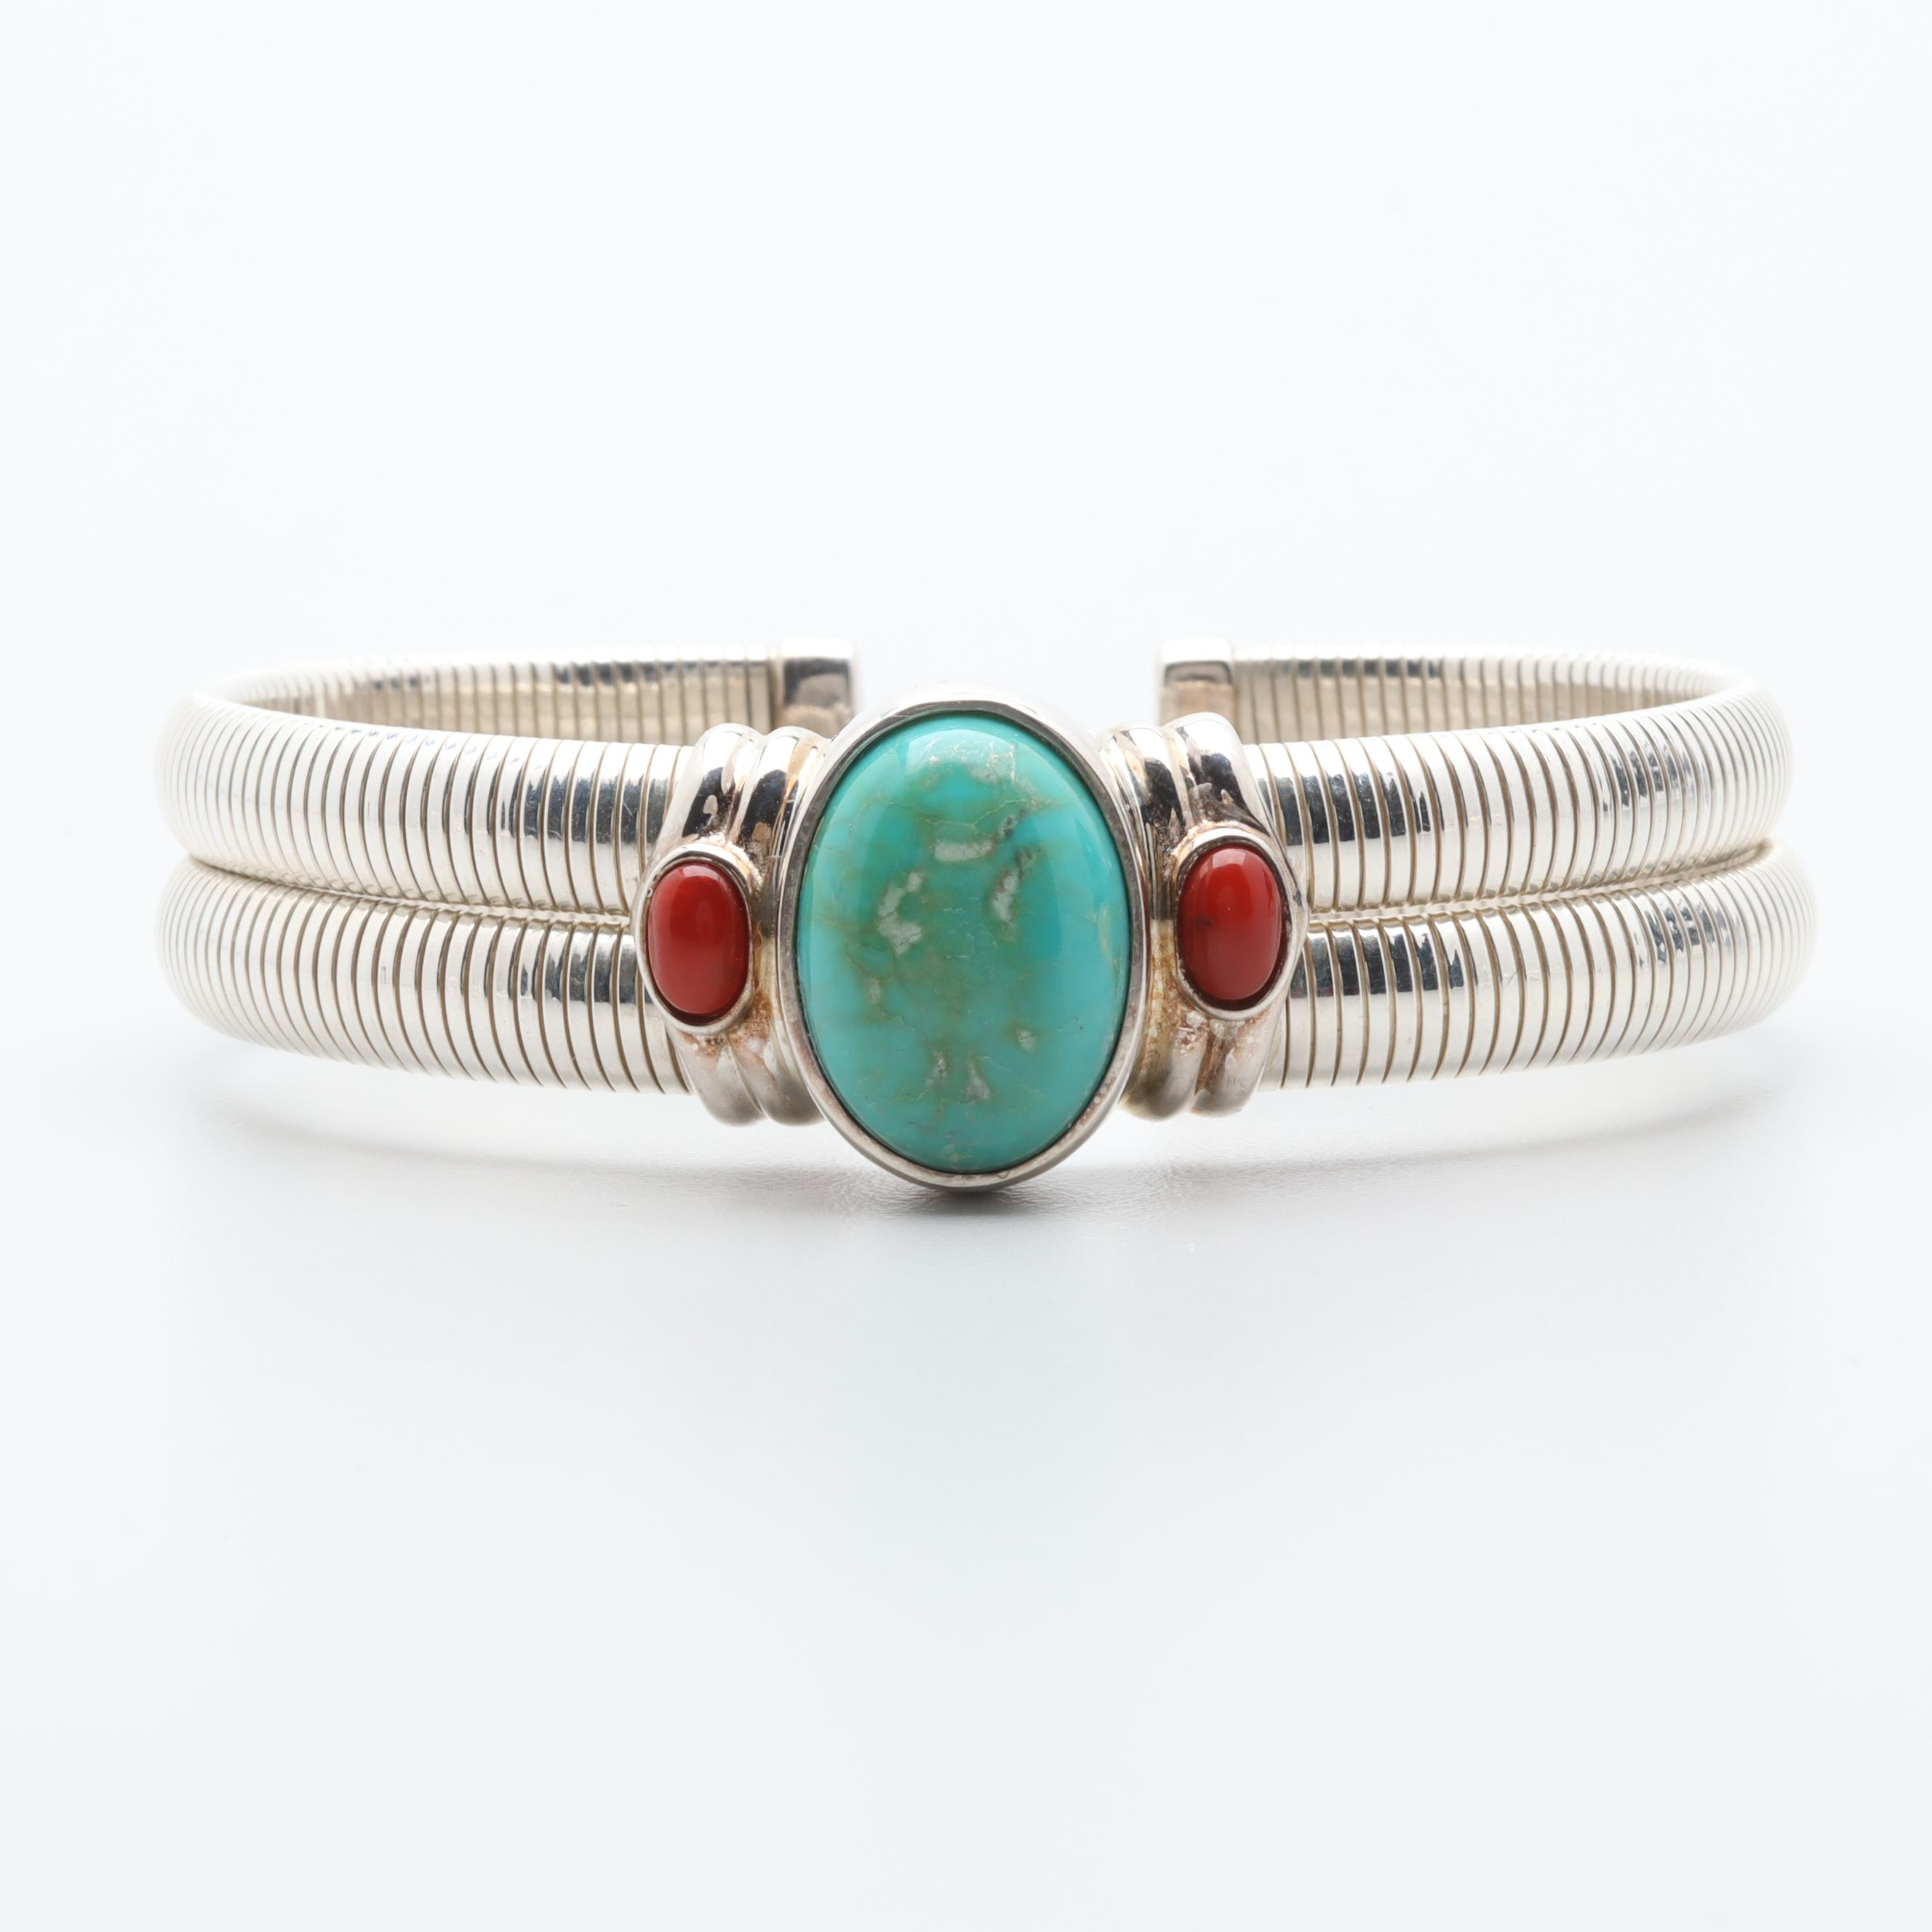 Joseph Esposito Sterling Silver Turquoise and Coral Flex Fit Cuff Bracelet